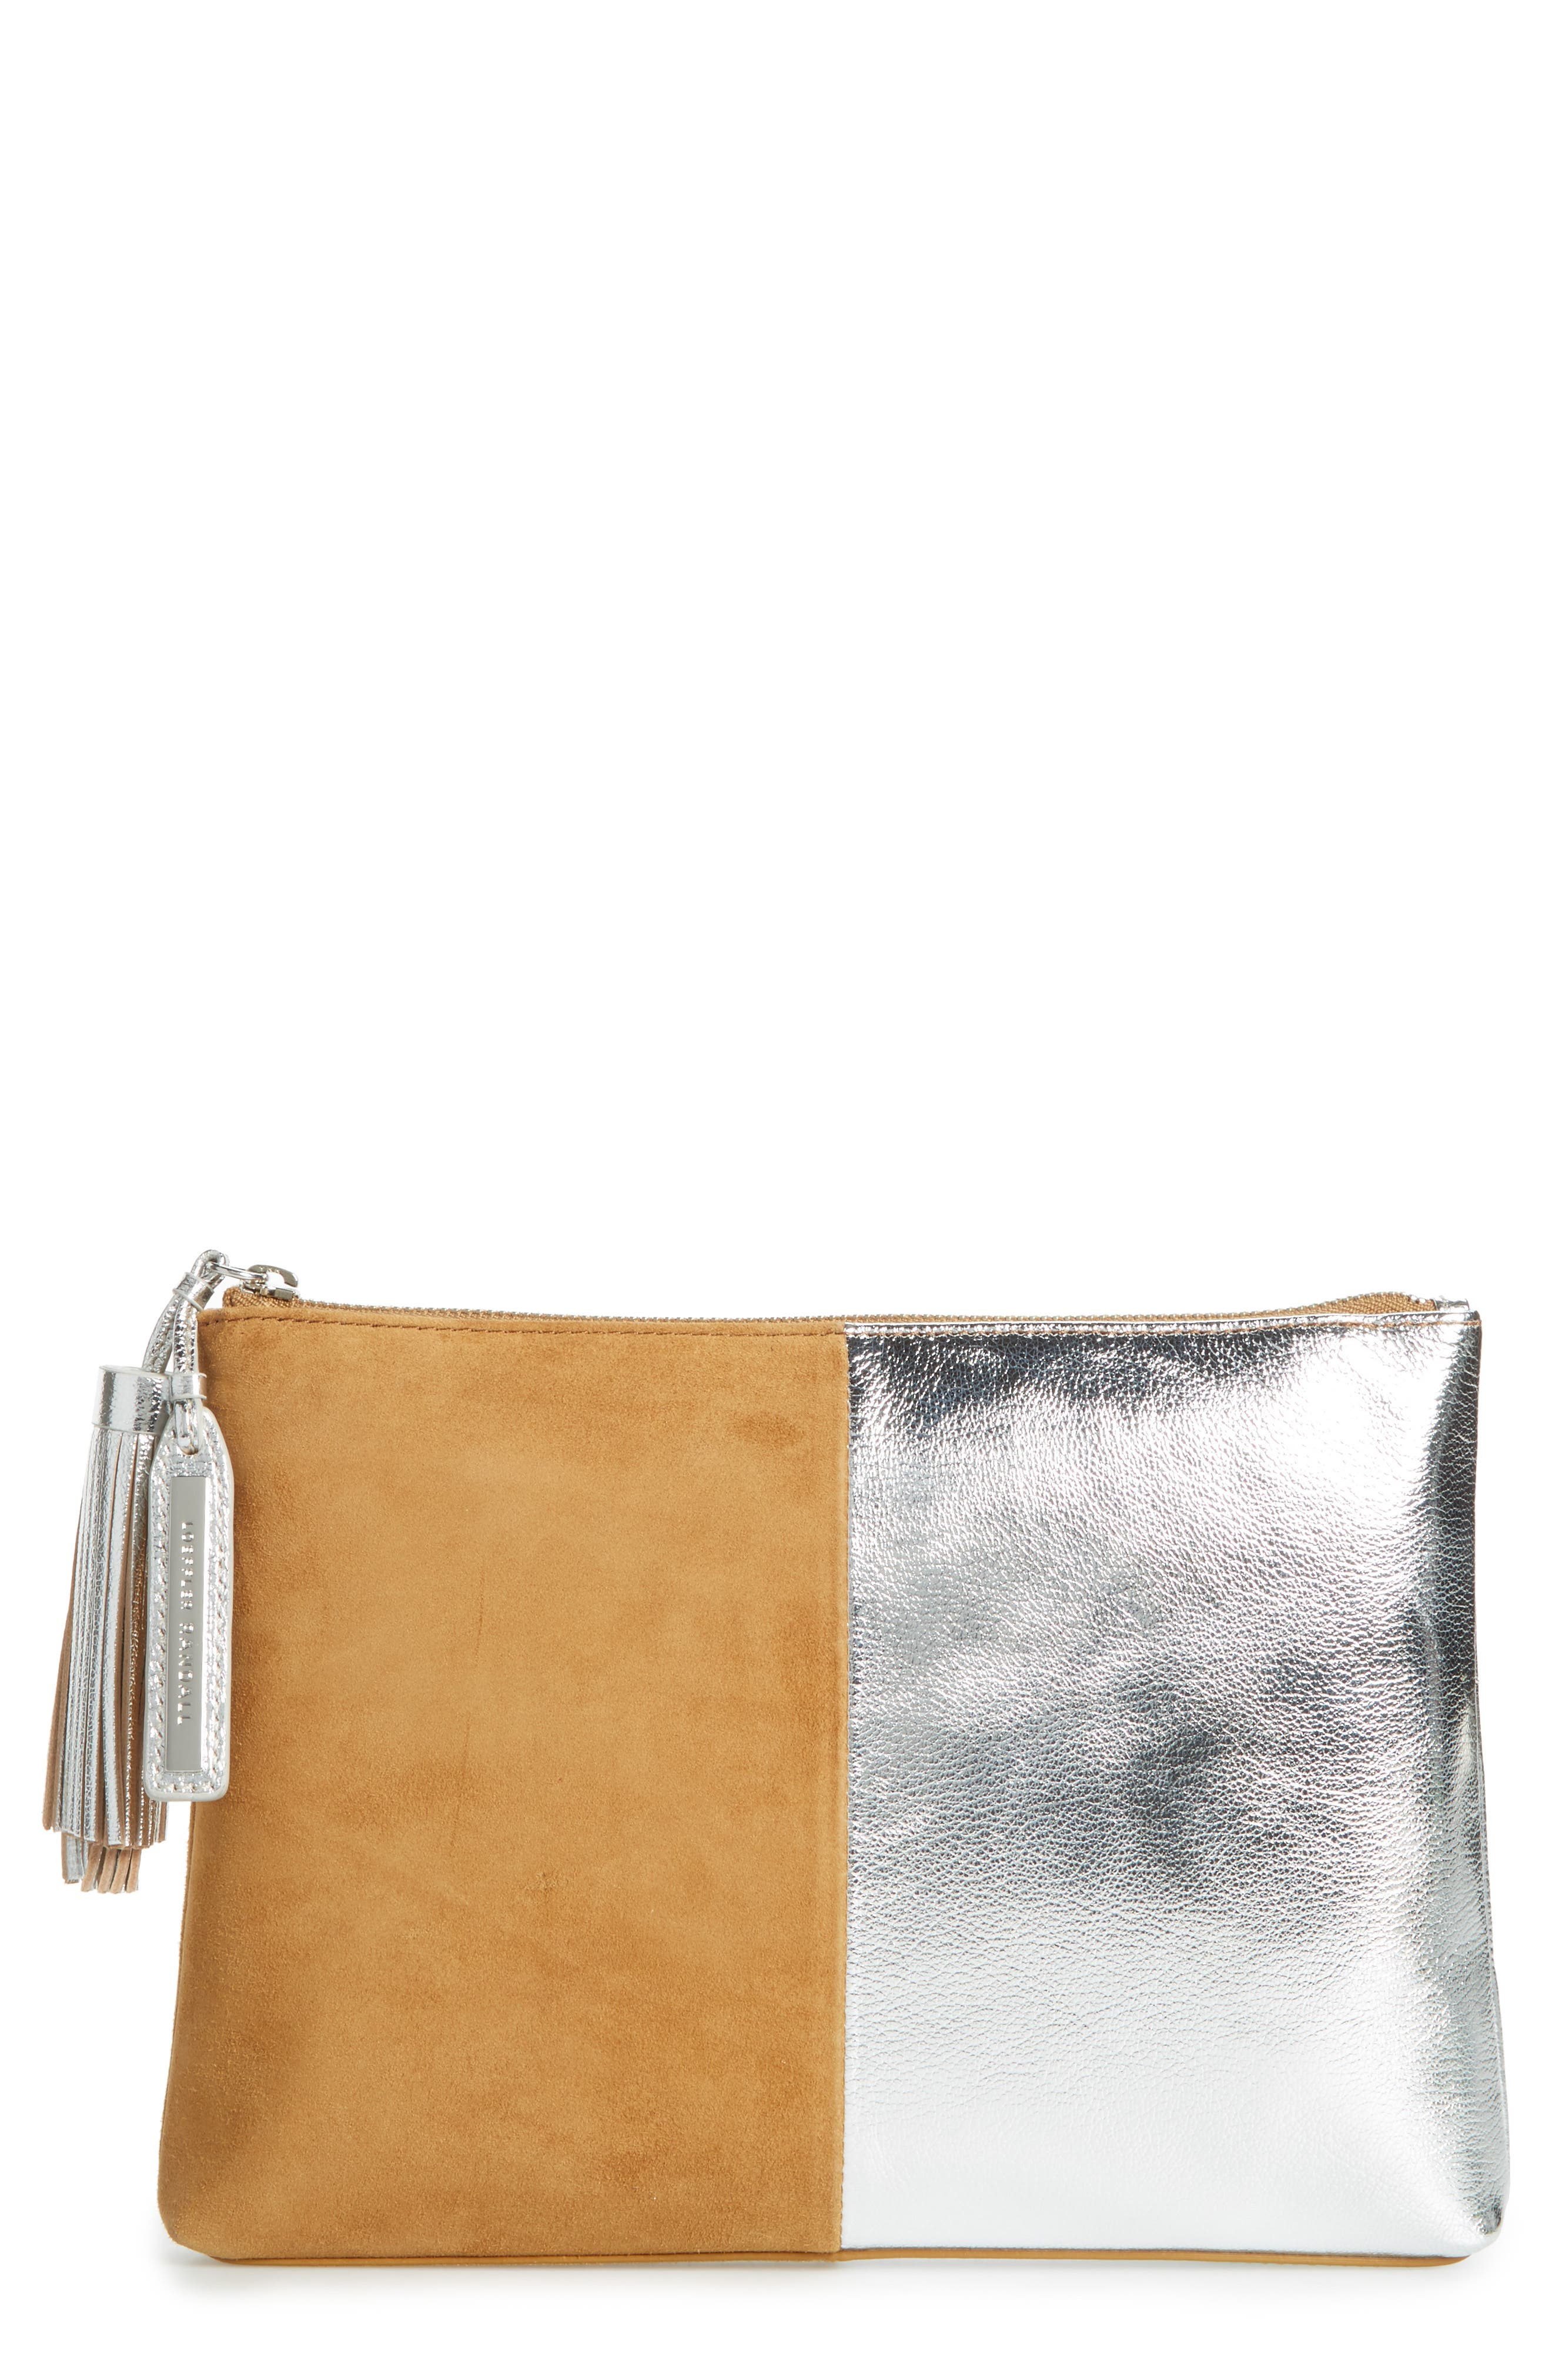 Main Image - Loeffler Randall Tassel Metallic Leather & Suede Pouch